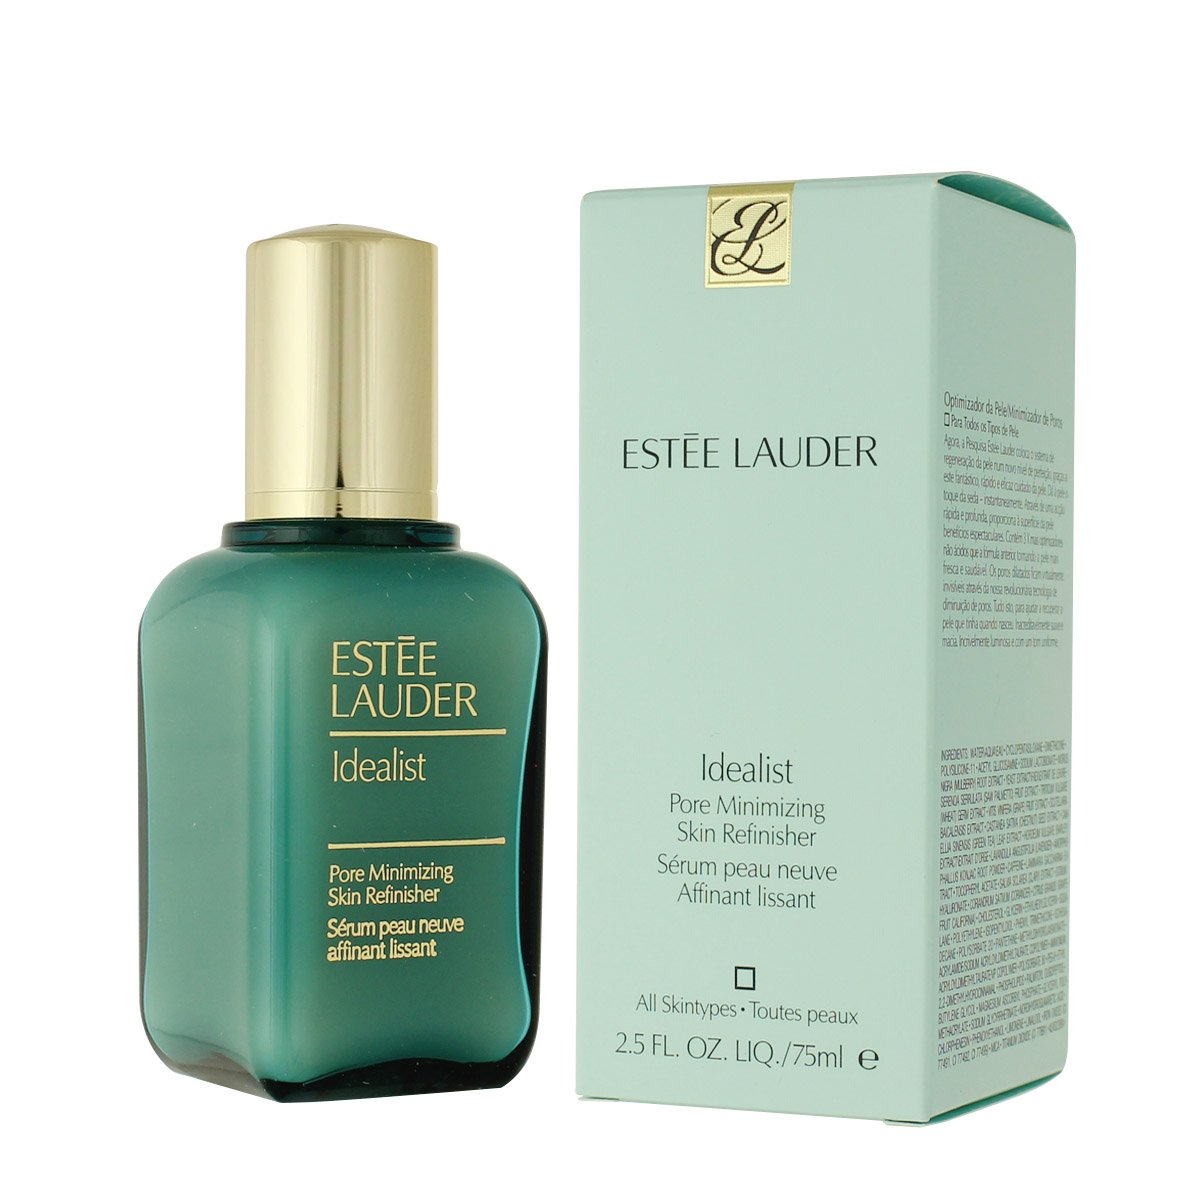 Estee Lauder Idealist amazon